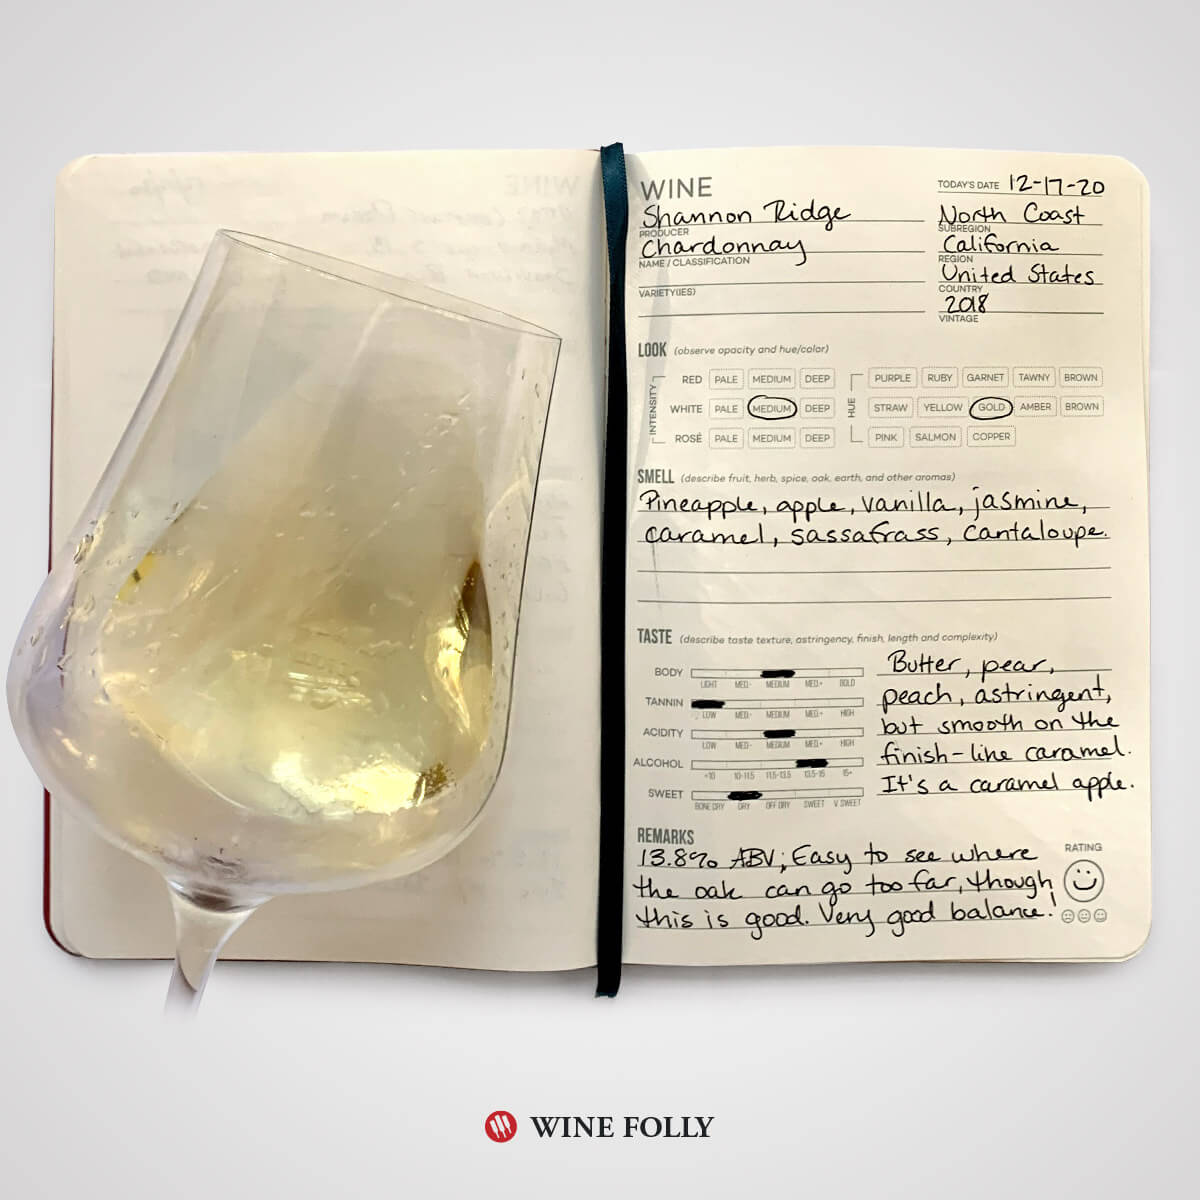 chardonnay-wine-tasting-notes-journal